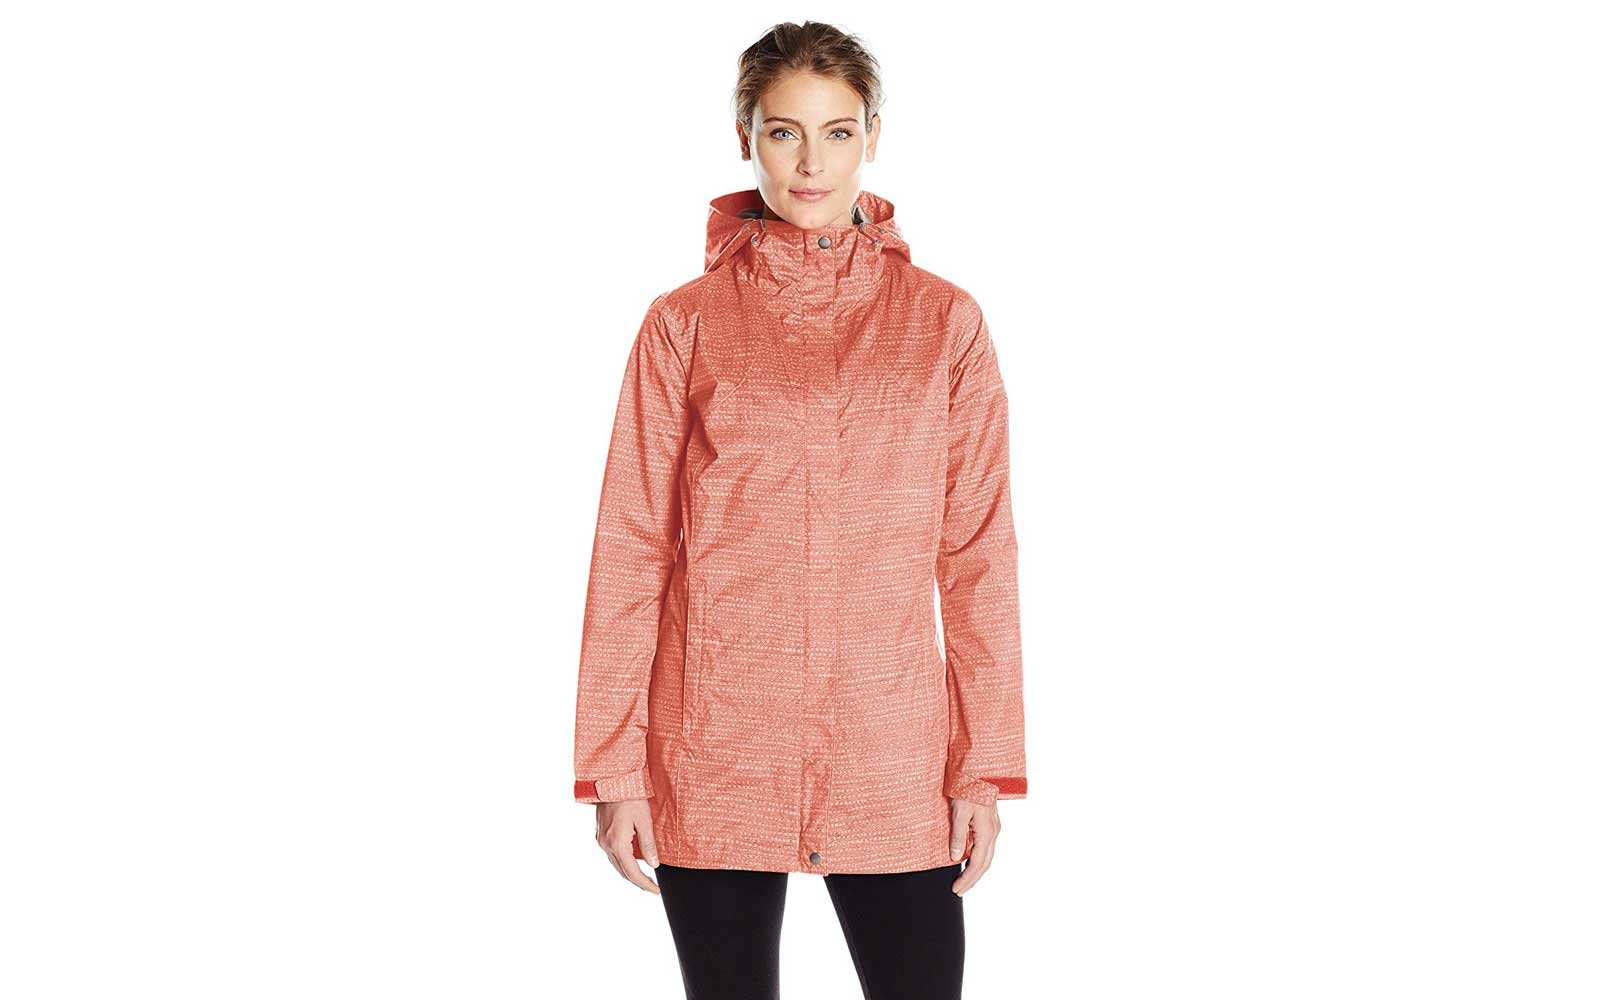 Women's Rain Jacket: Columbia 'Splash A Little' Rain Jacket